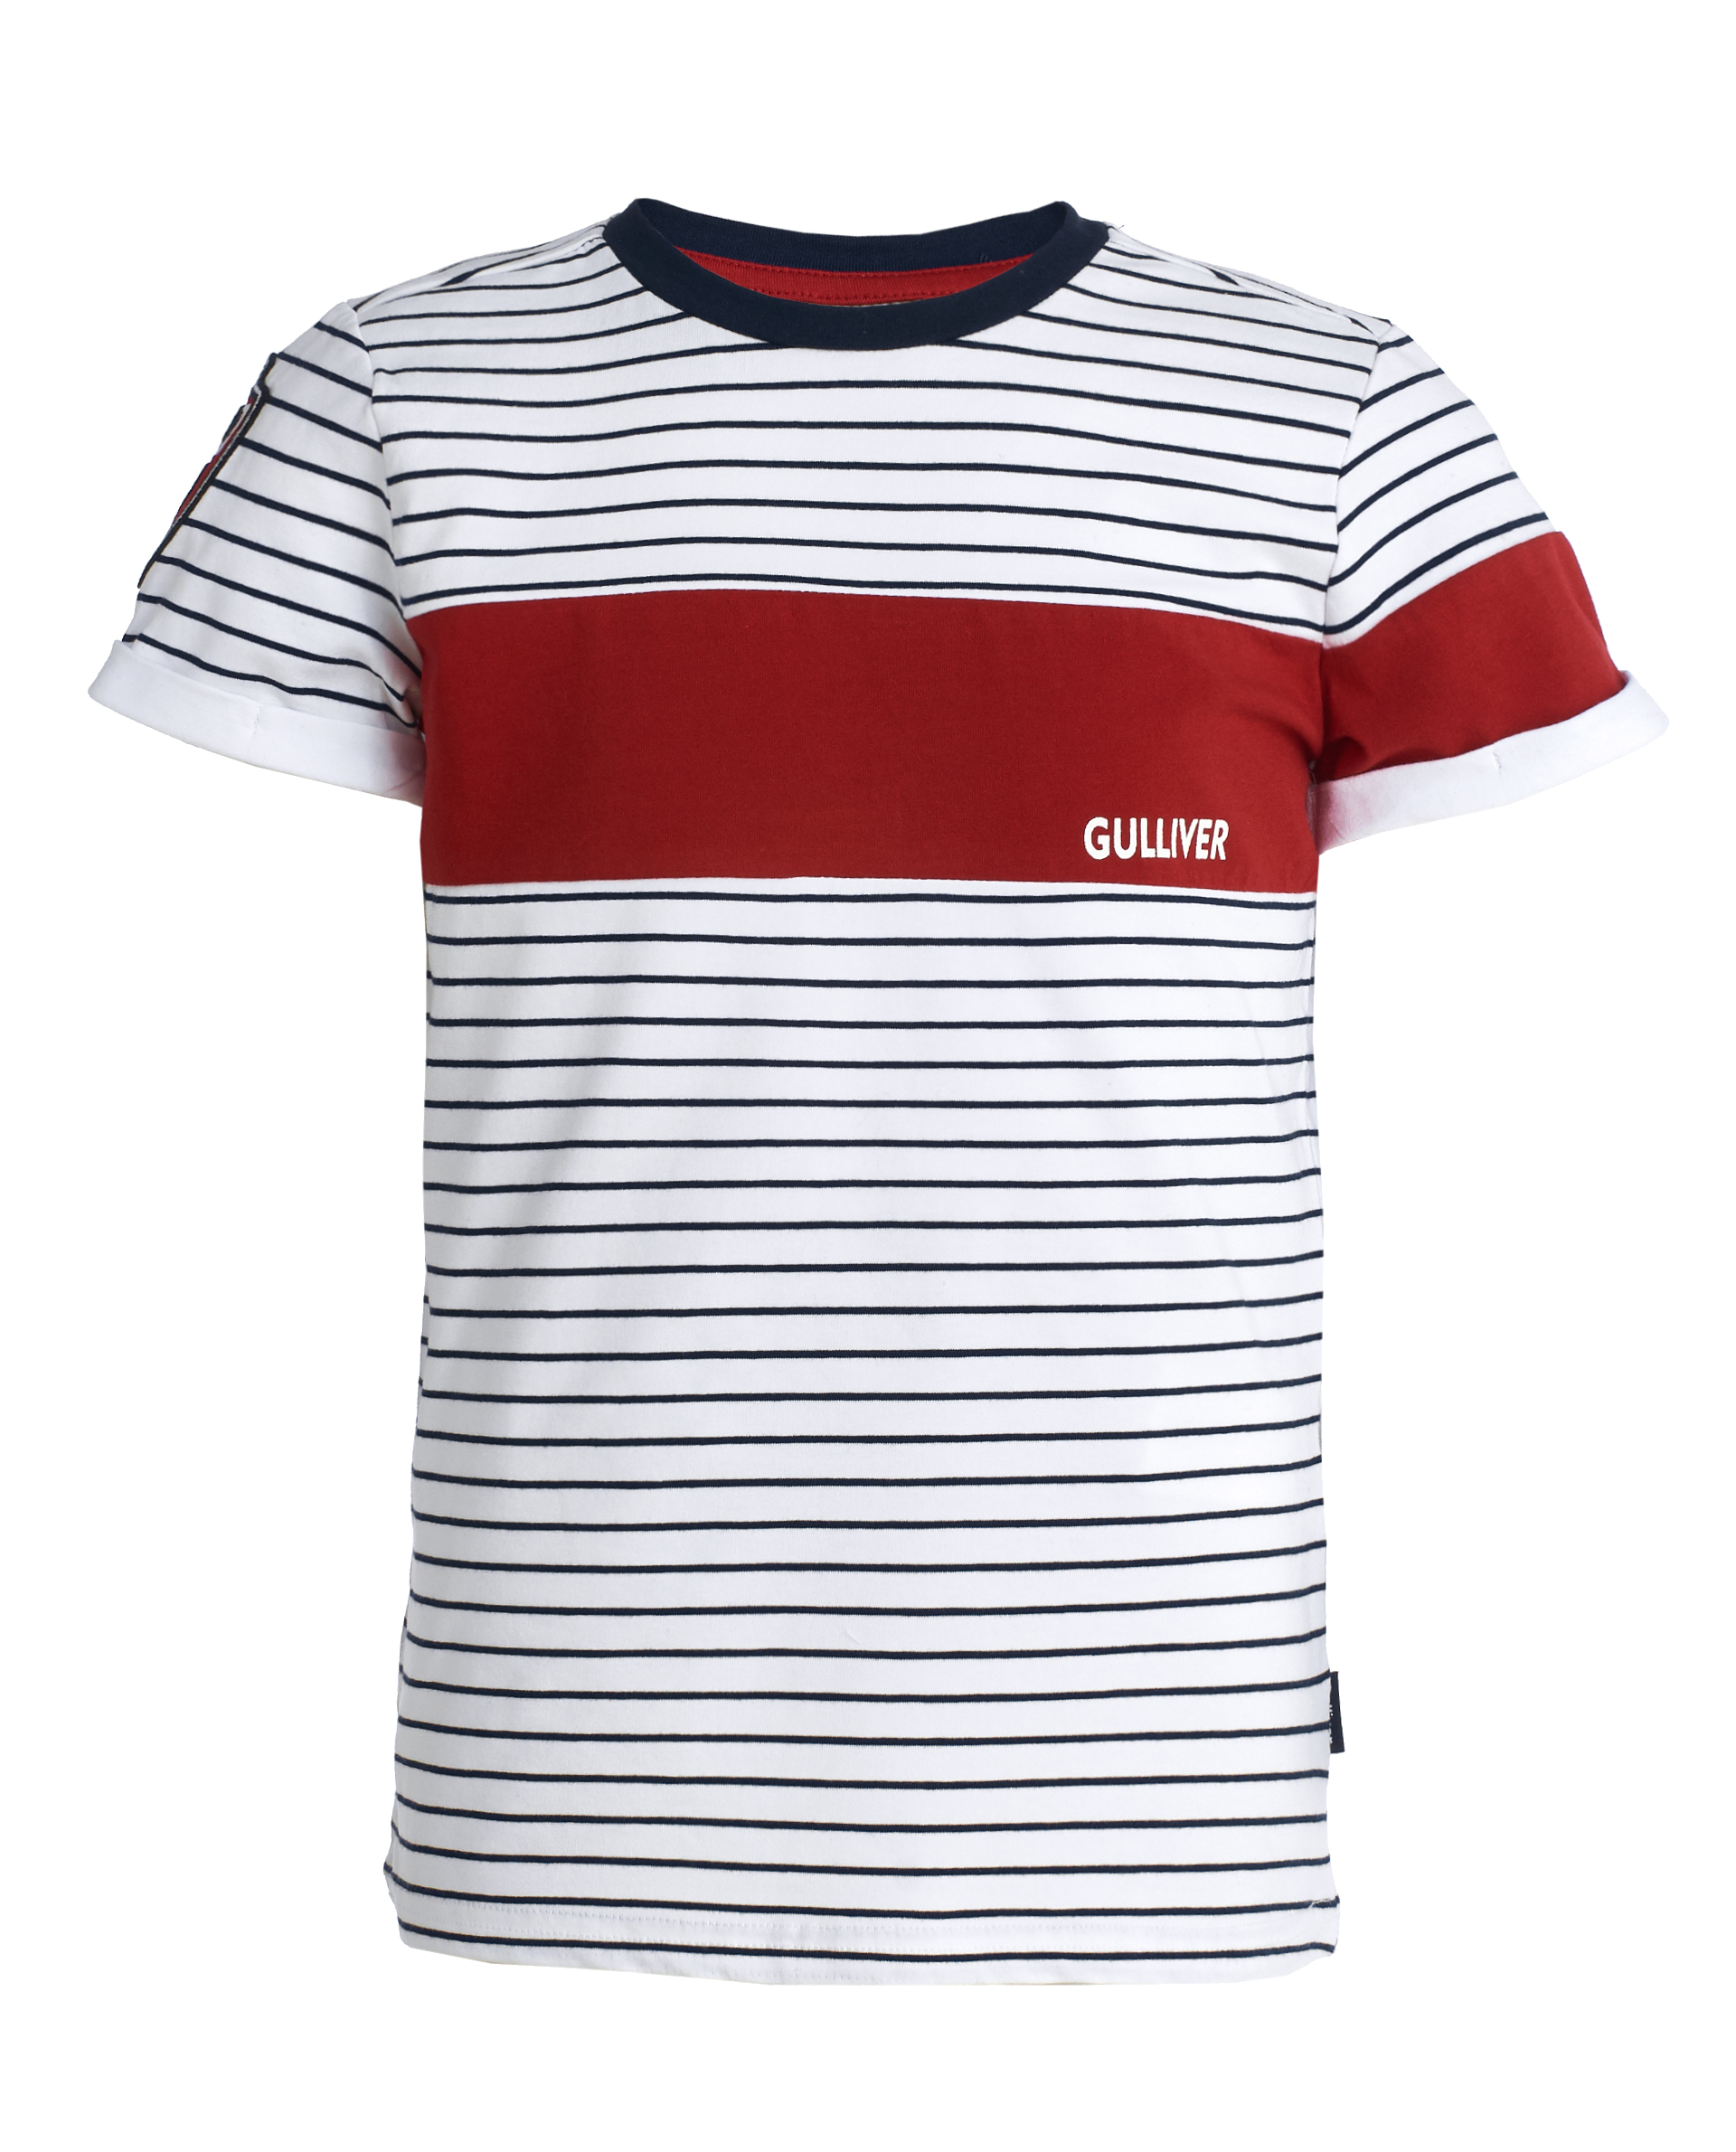 d63310f64 T-shirt with asymmetric print Gulliver is to buy in online store ...